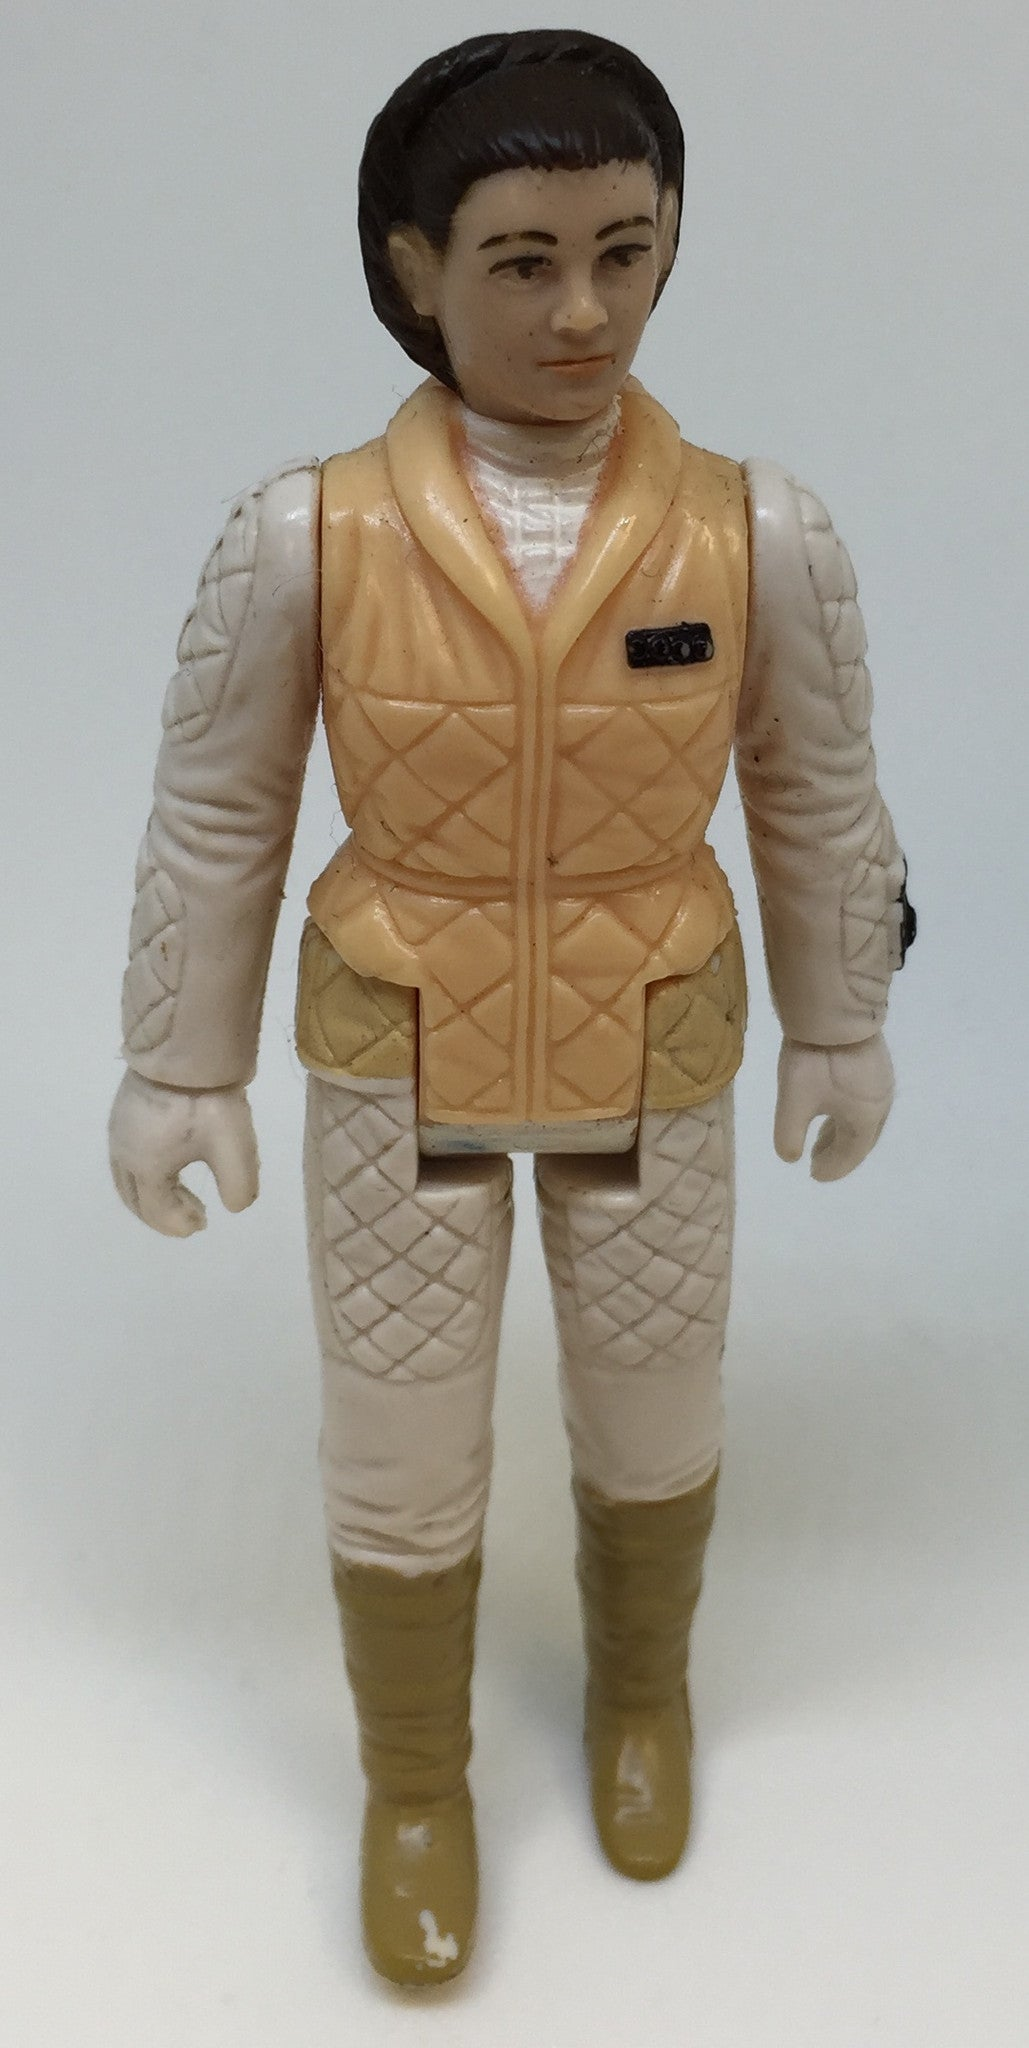 Vintage Star Wars Loose Princess Leia Hoth Kenner Action Figure